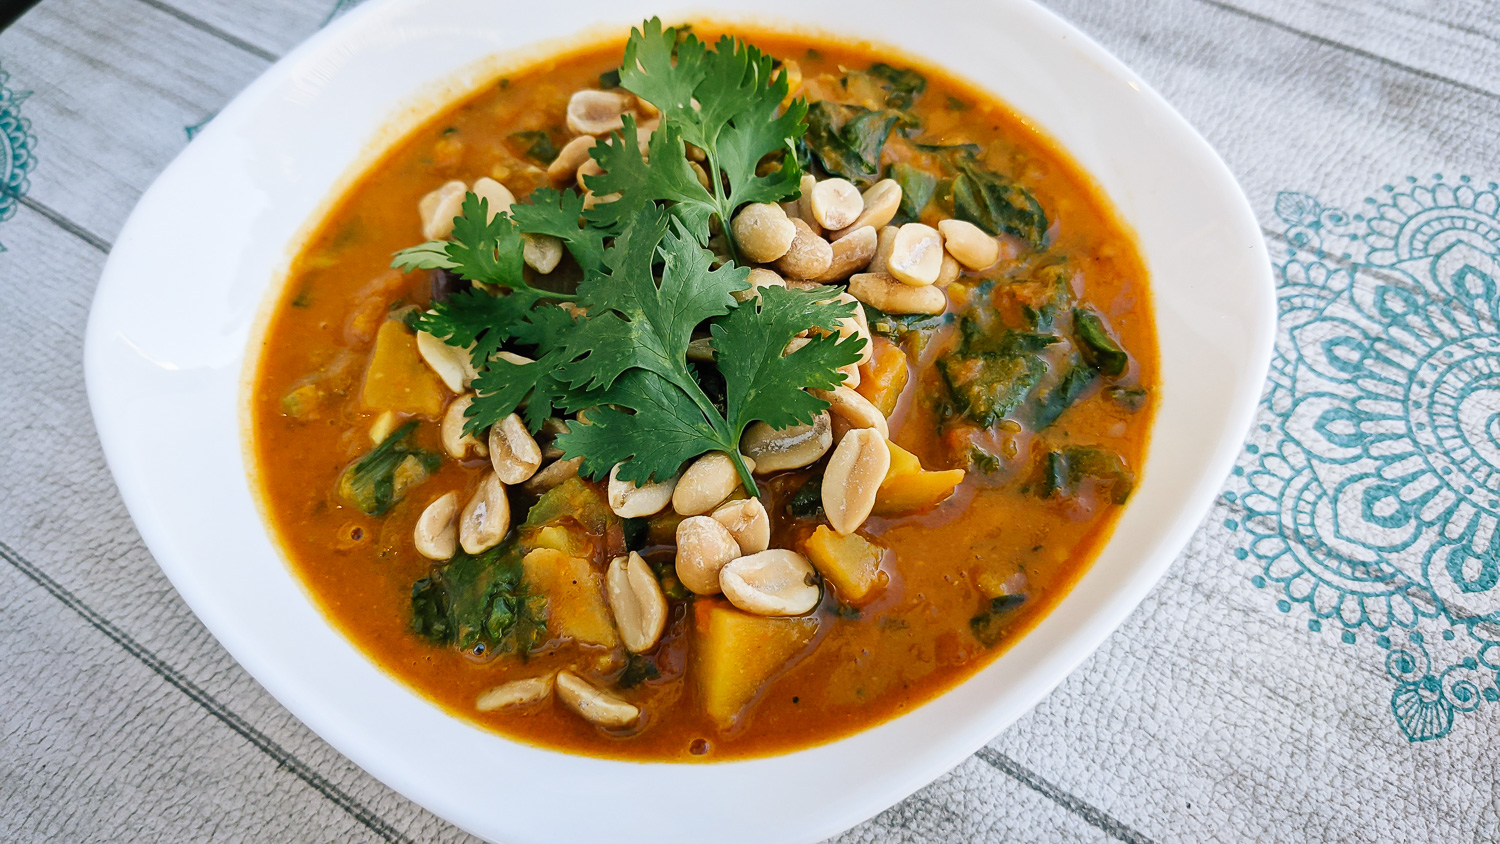 Groundnut stew from Mali is a delicious and warming soup that is perfect for a cold winter night.